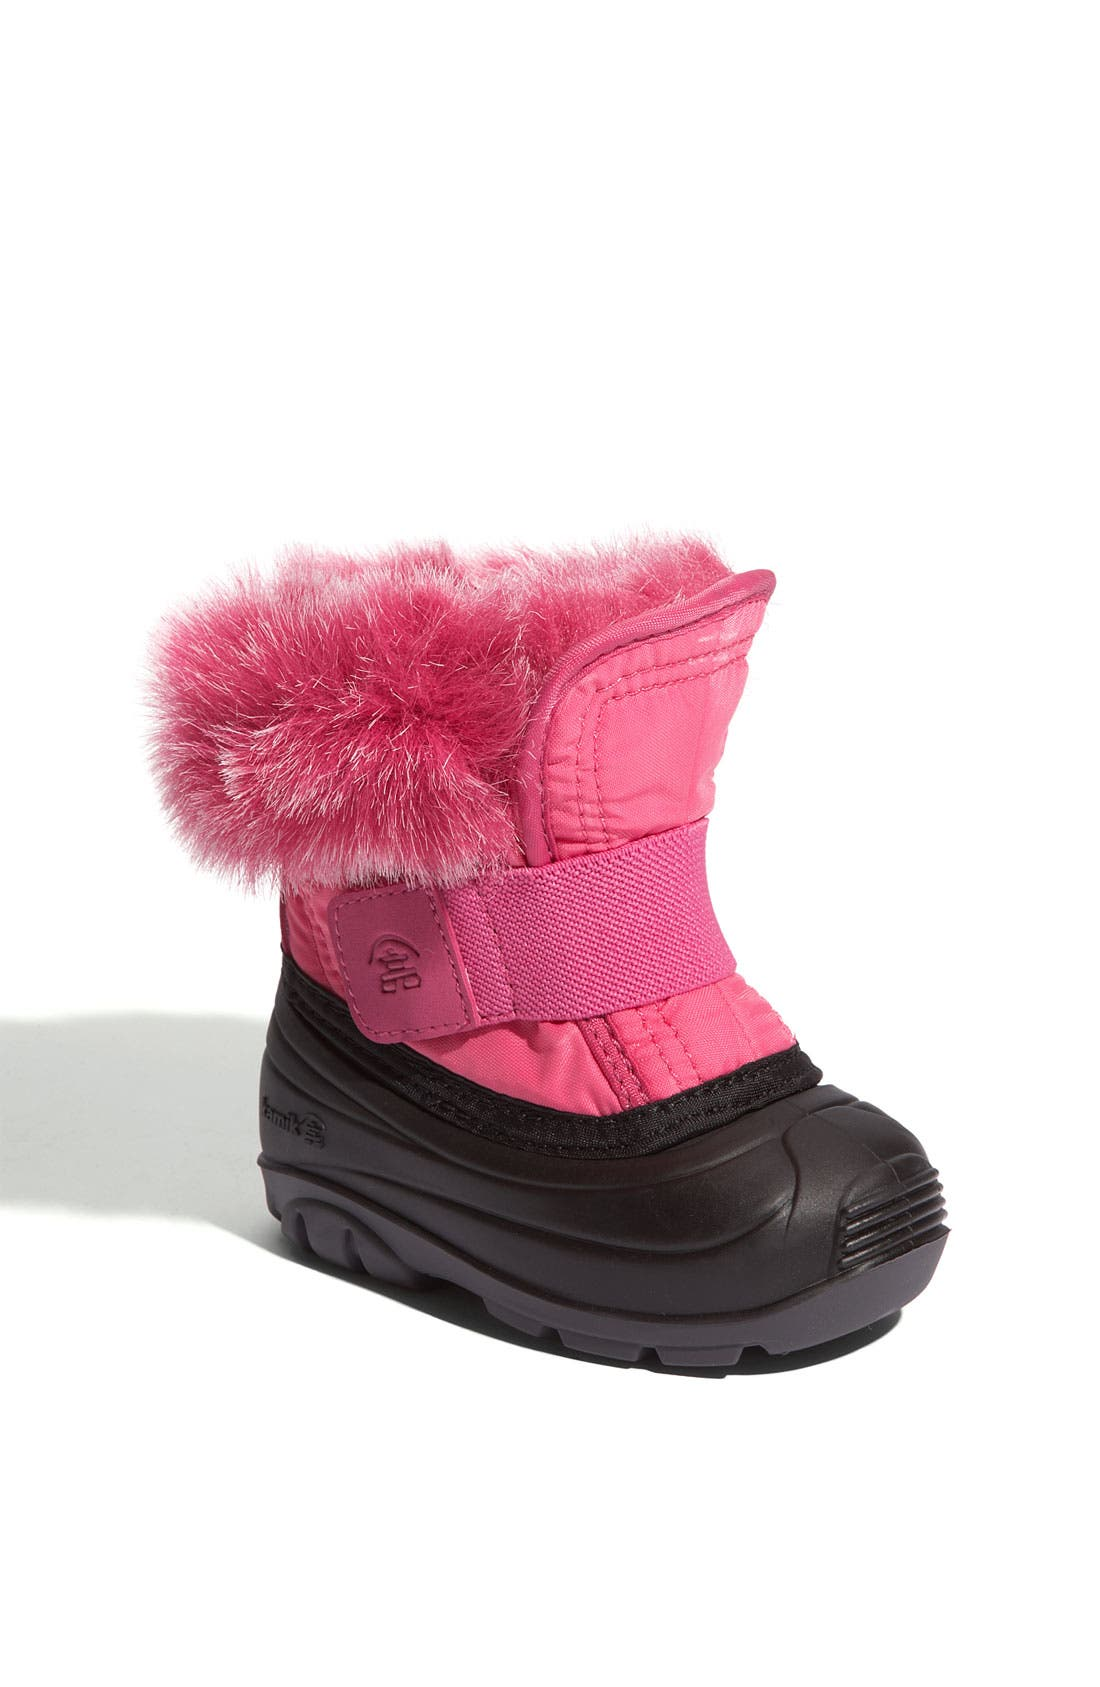 Alternate Image 1 Selected - Kamik 'Sugarplum' Boot (Walker & Toddler)